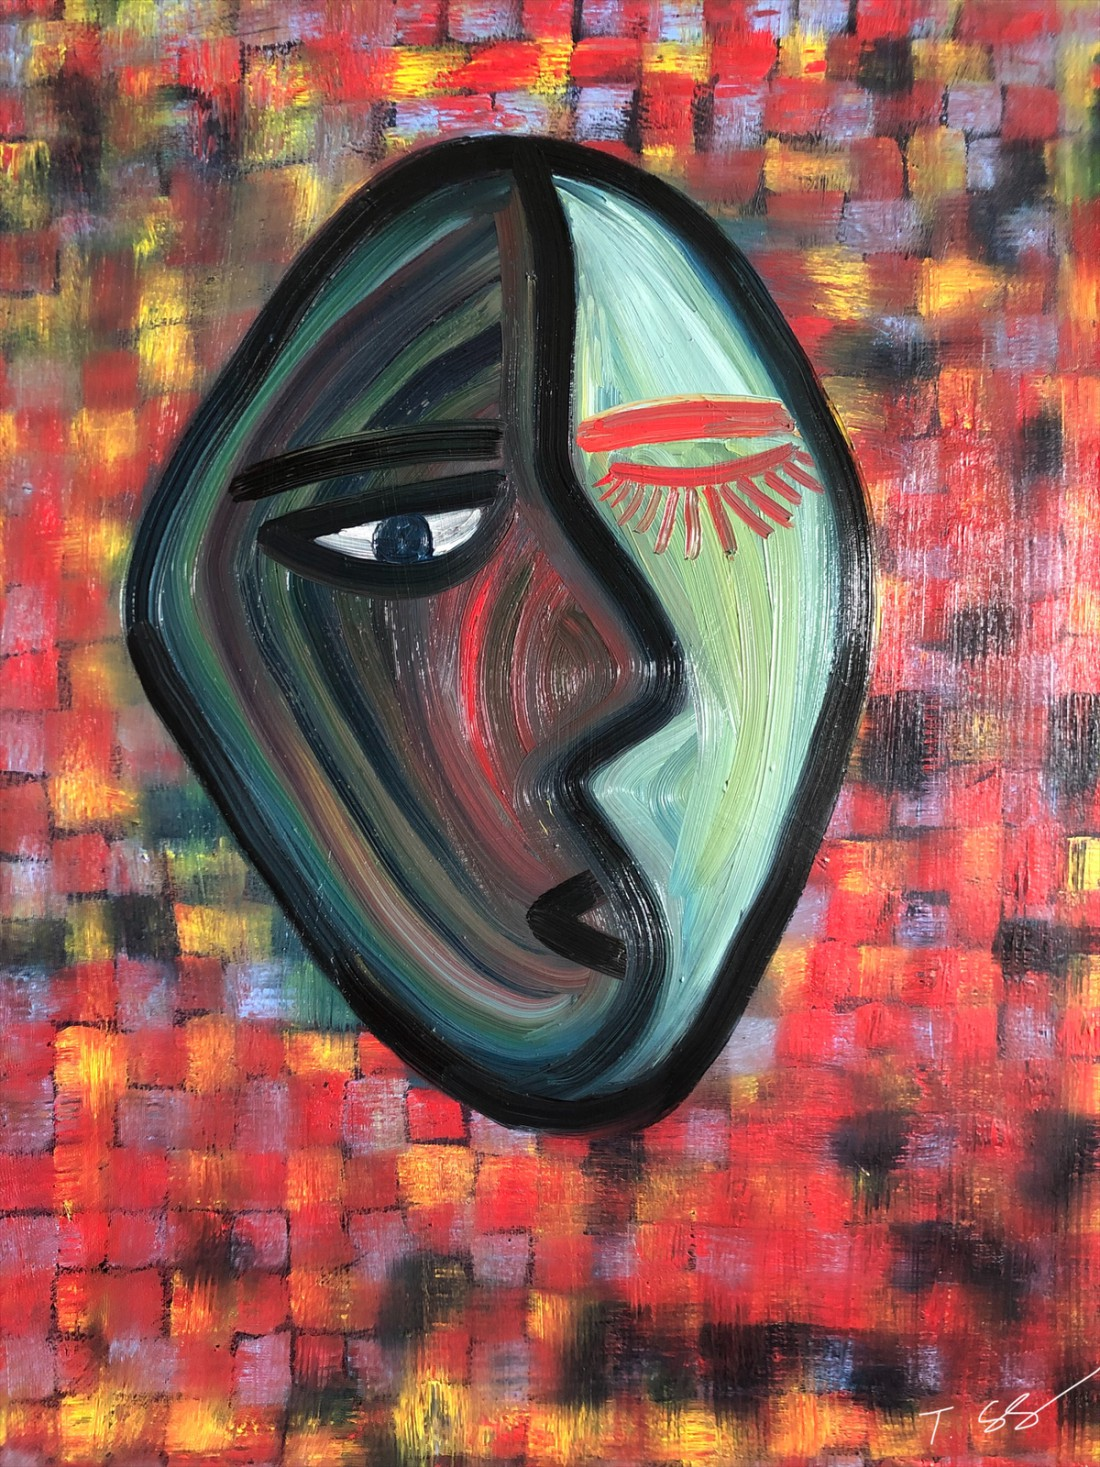 Two faced artwork by Solongo Turbayar - art listed for sale on Artplode